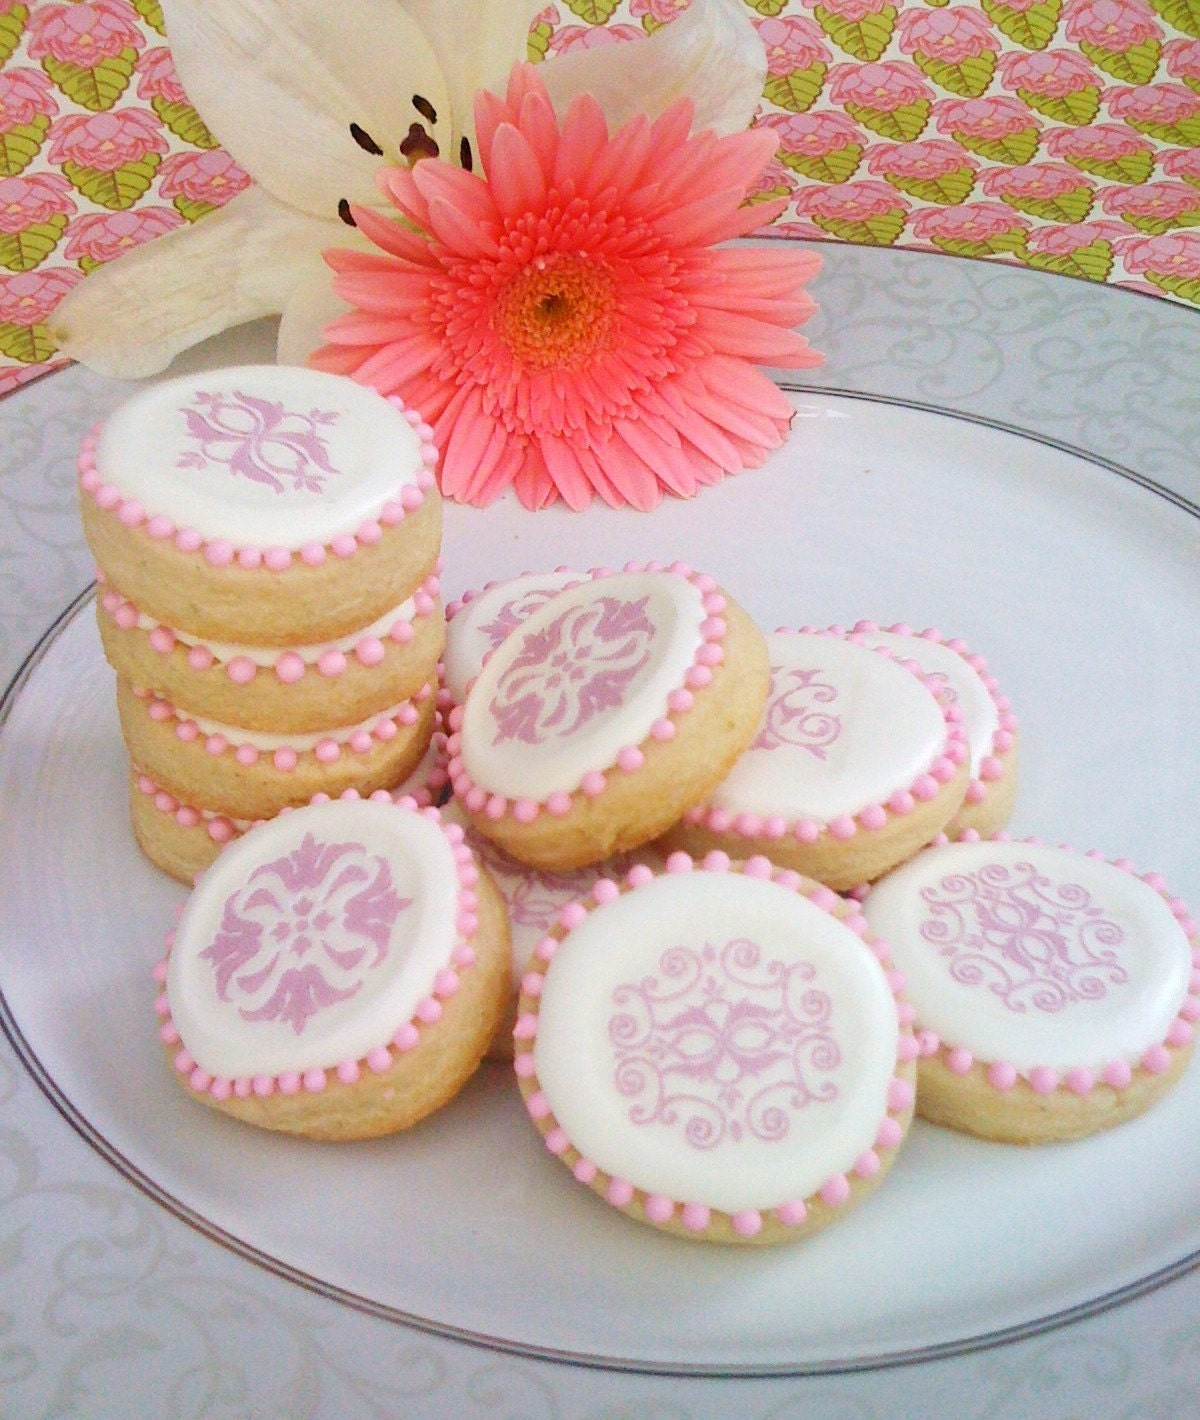 Baroque design cookies (1 dozen)